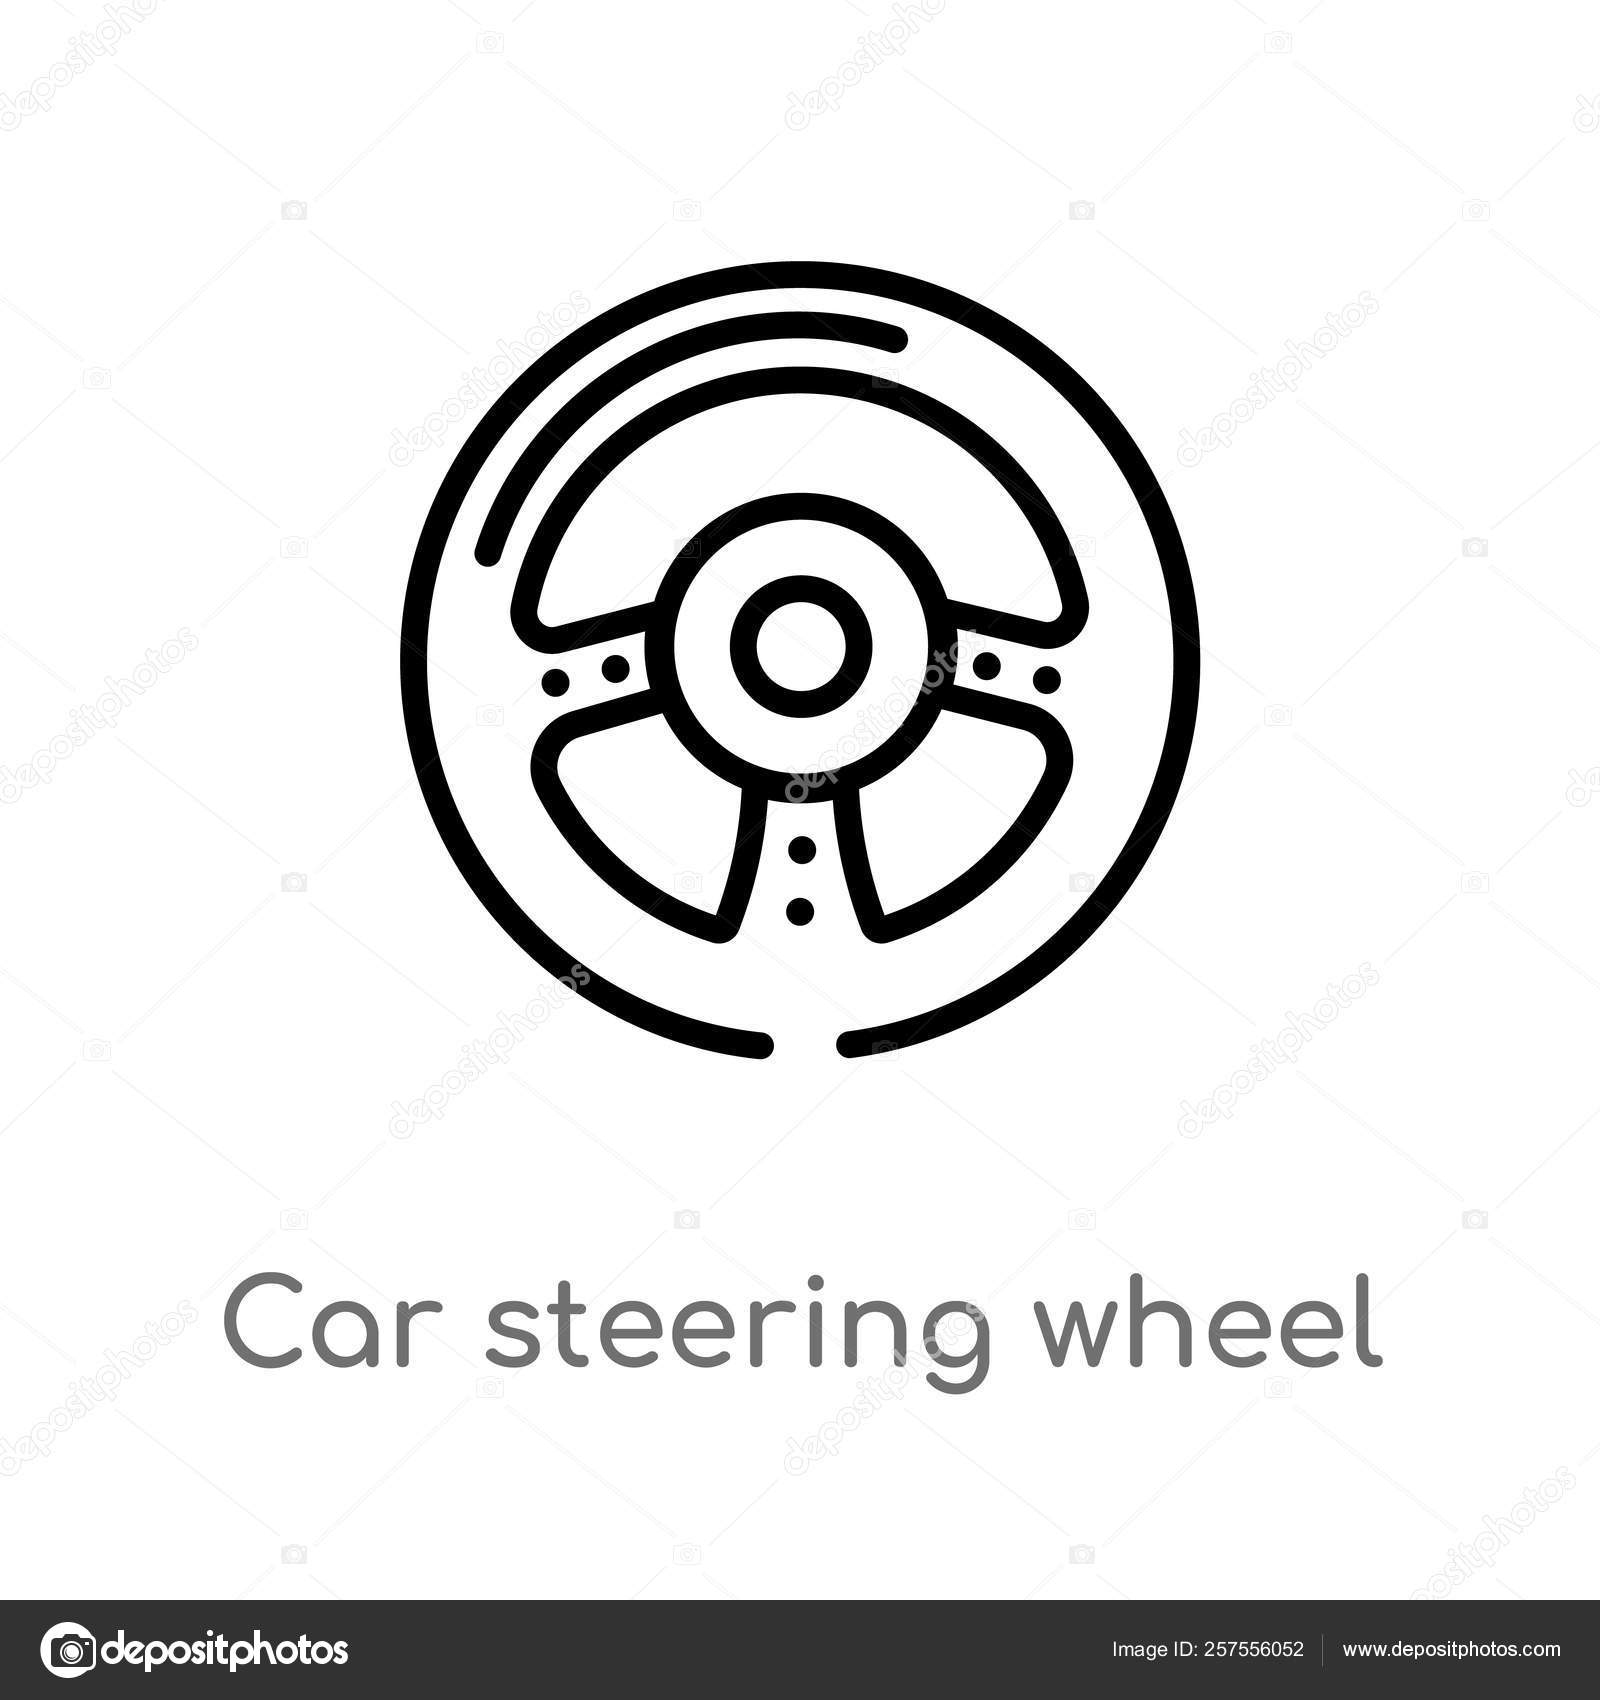 outline car steering wheel vector icon isolated black simple line stock vector c zaurrahimov 257556052 outline car steering wheel vector icon isolated black simple line stock vector c zaurrahimov 257556052